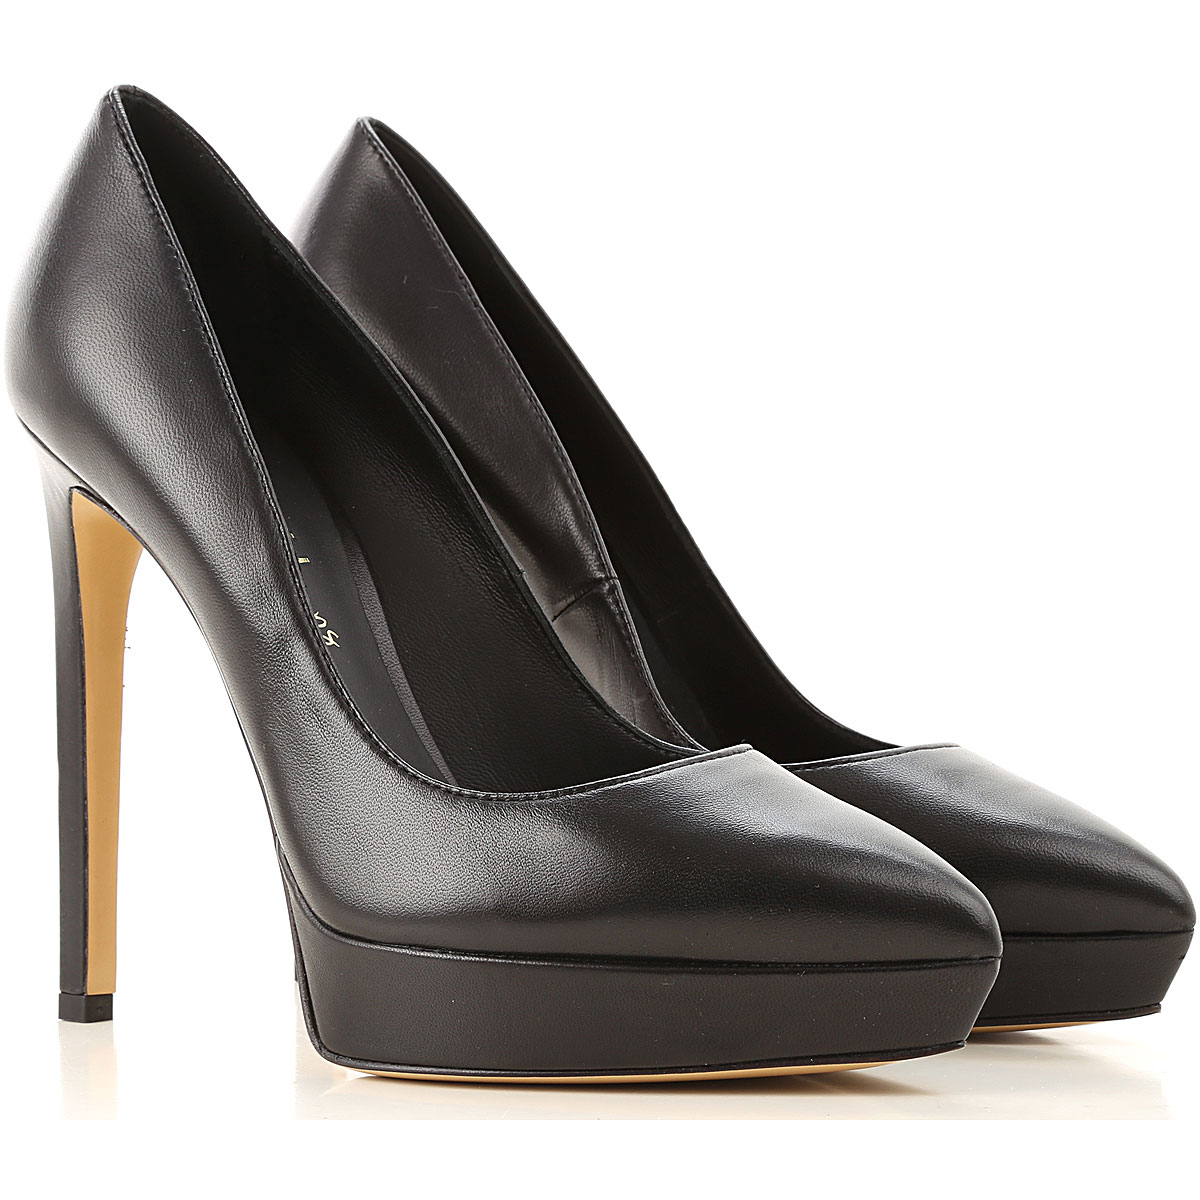 Nina Lilou Pumps & High Heels for Women On Sale in Outlet, Black, Leather, 2019, 6 8